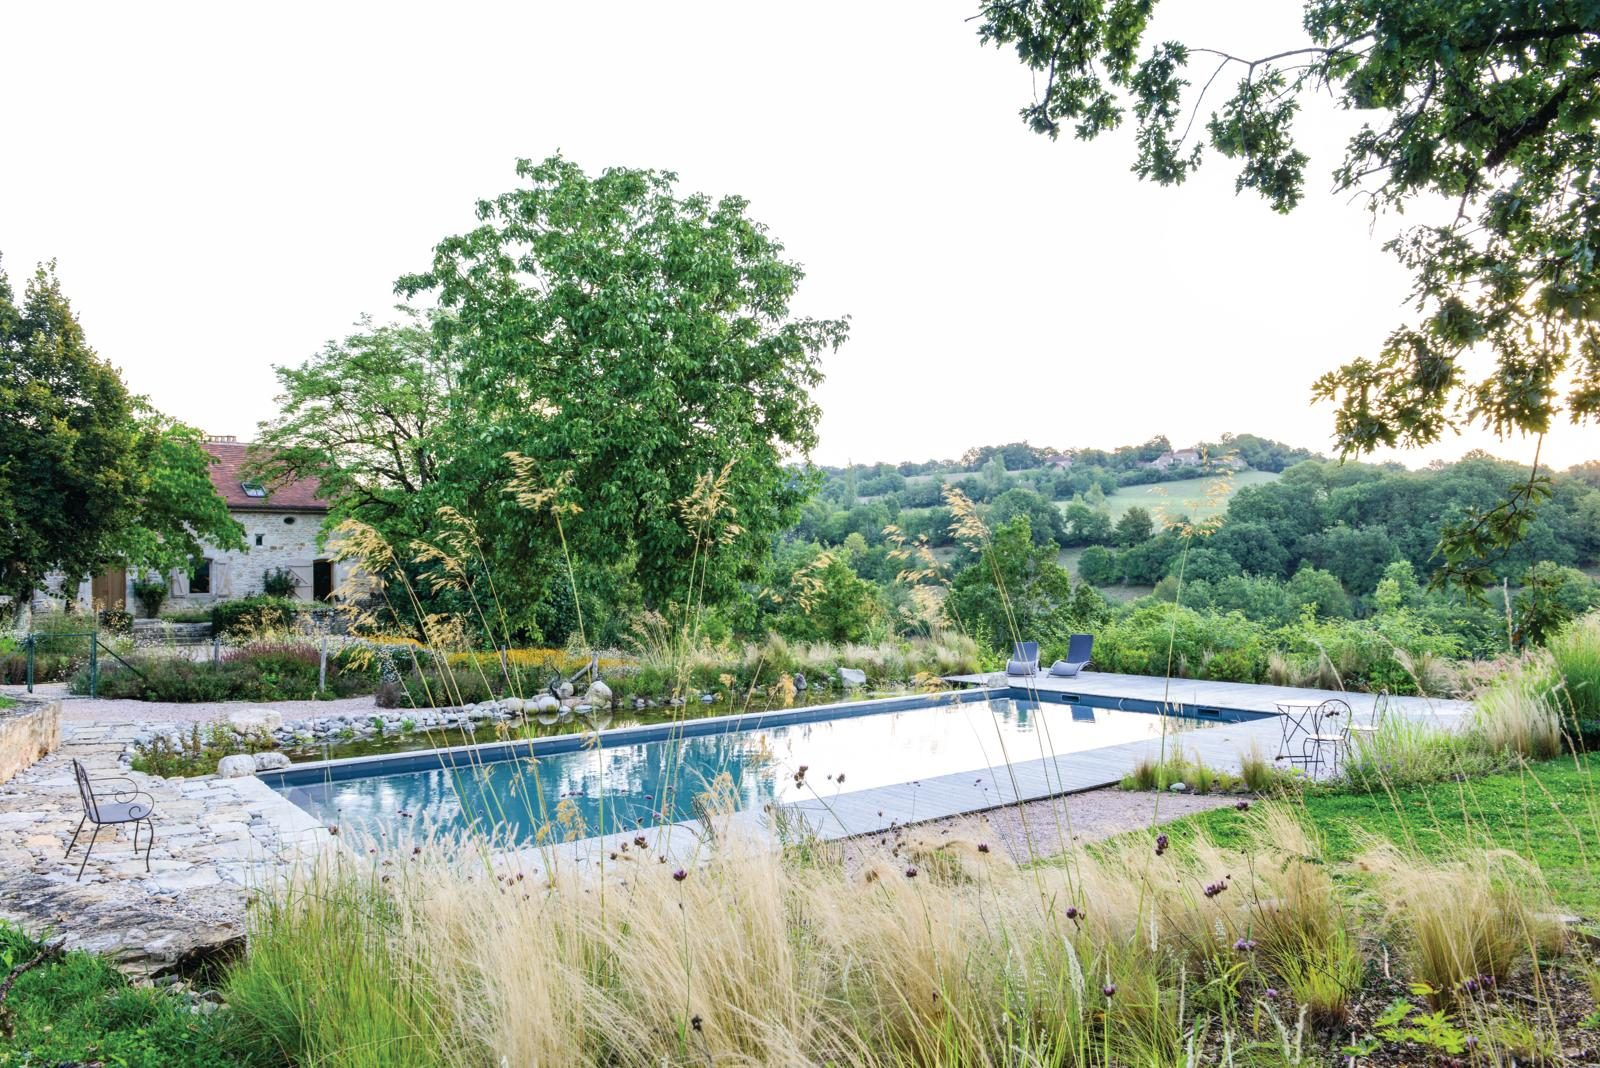 Design ideas for ponds and pools in the garden gardens illustrated